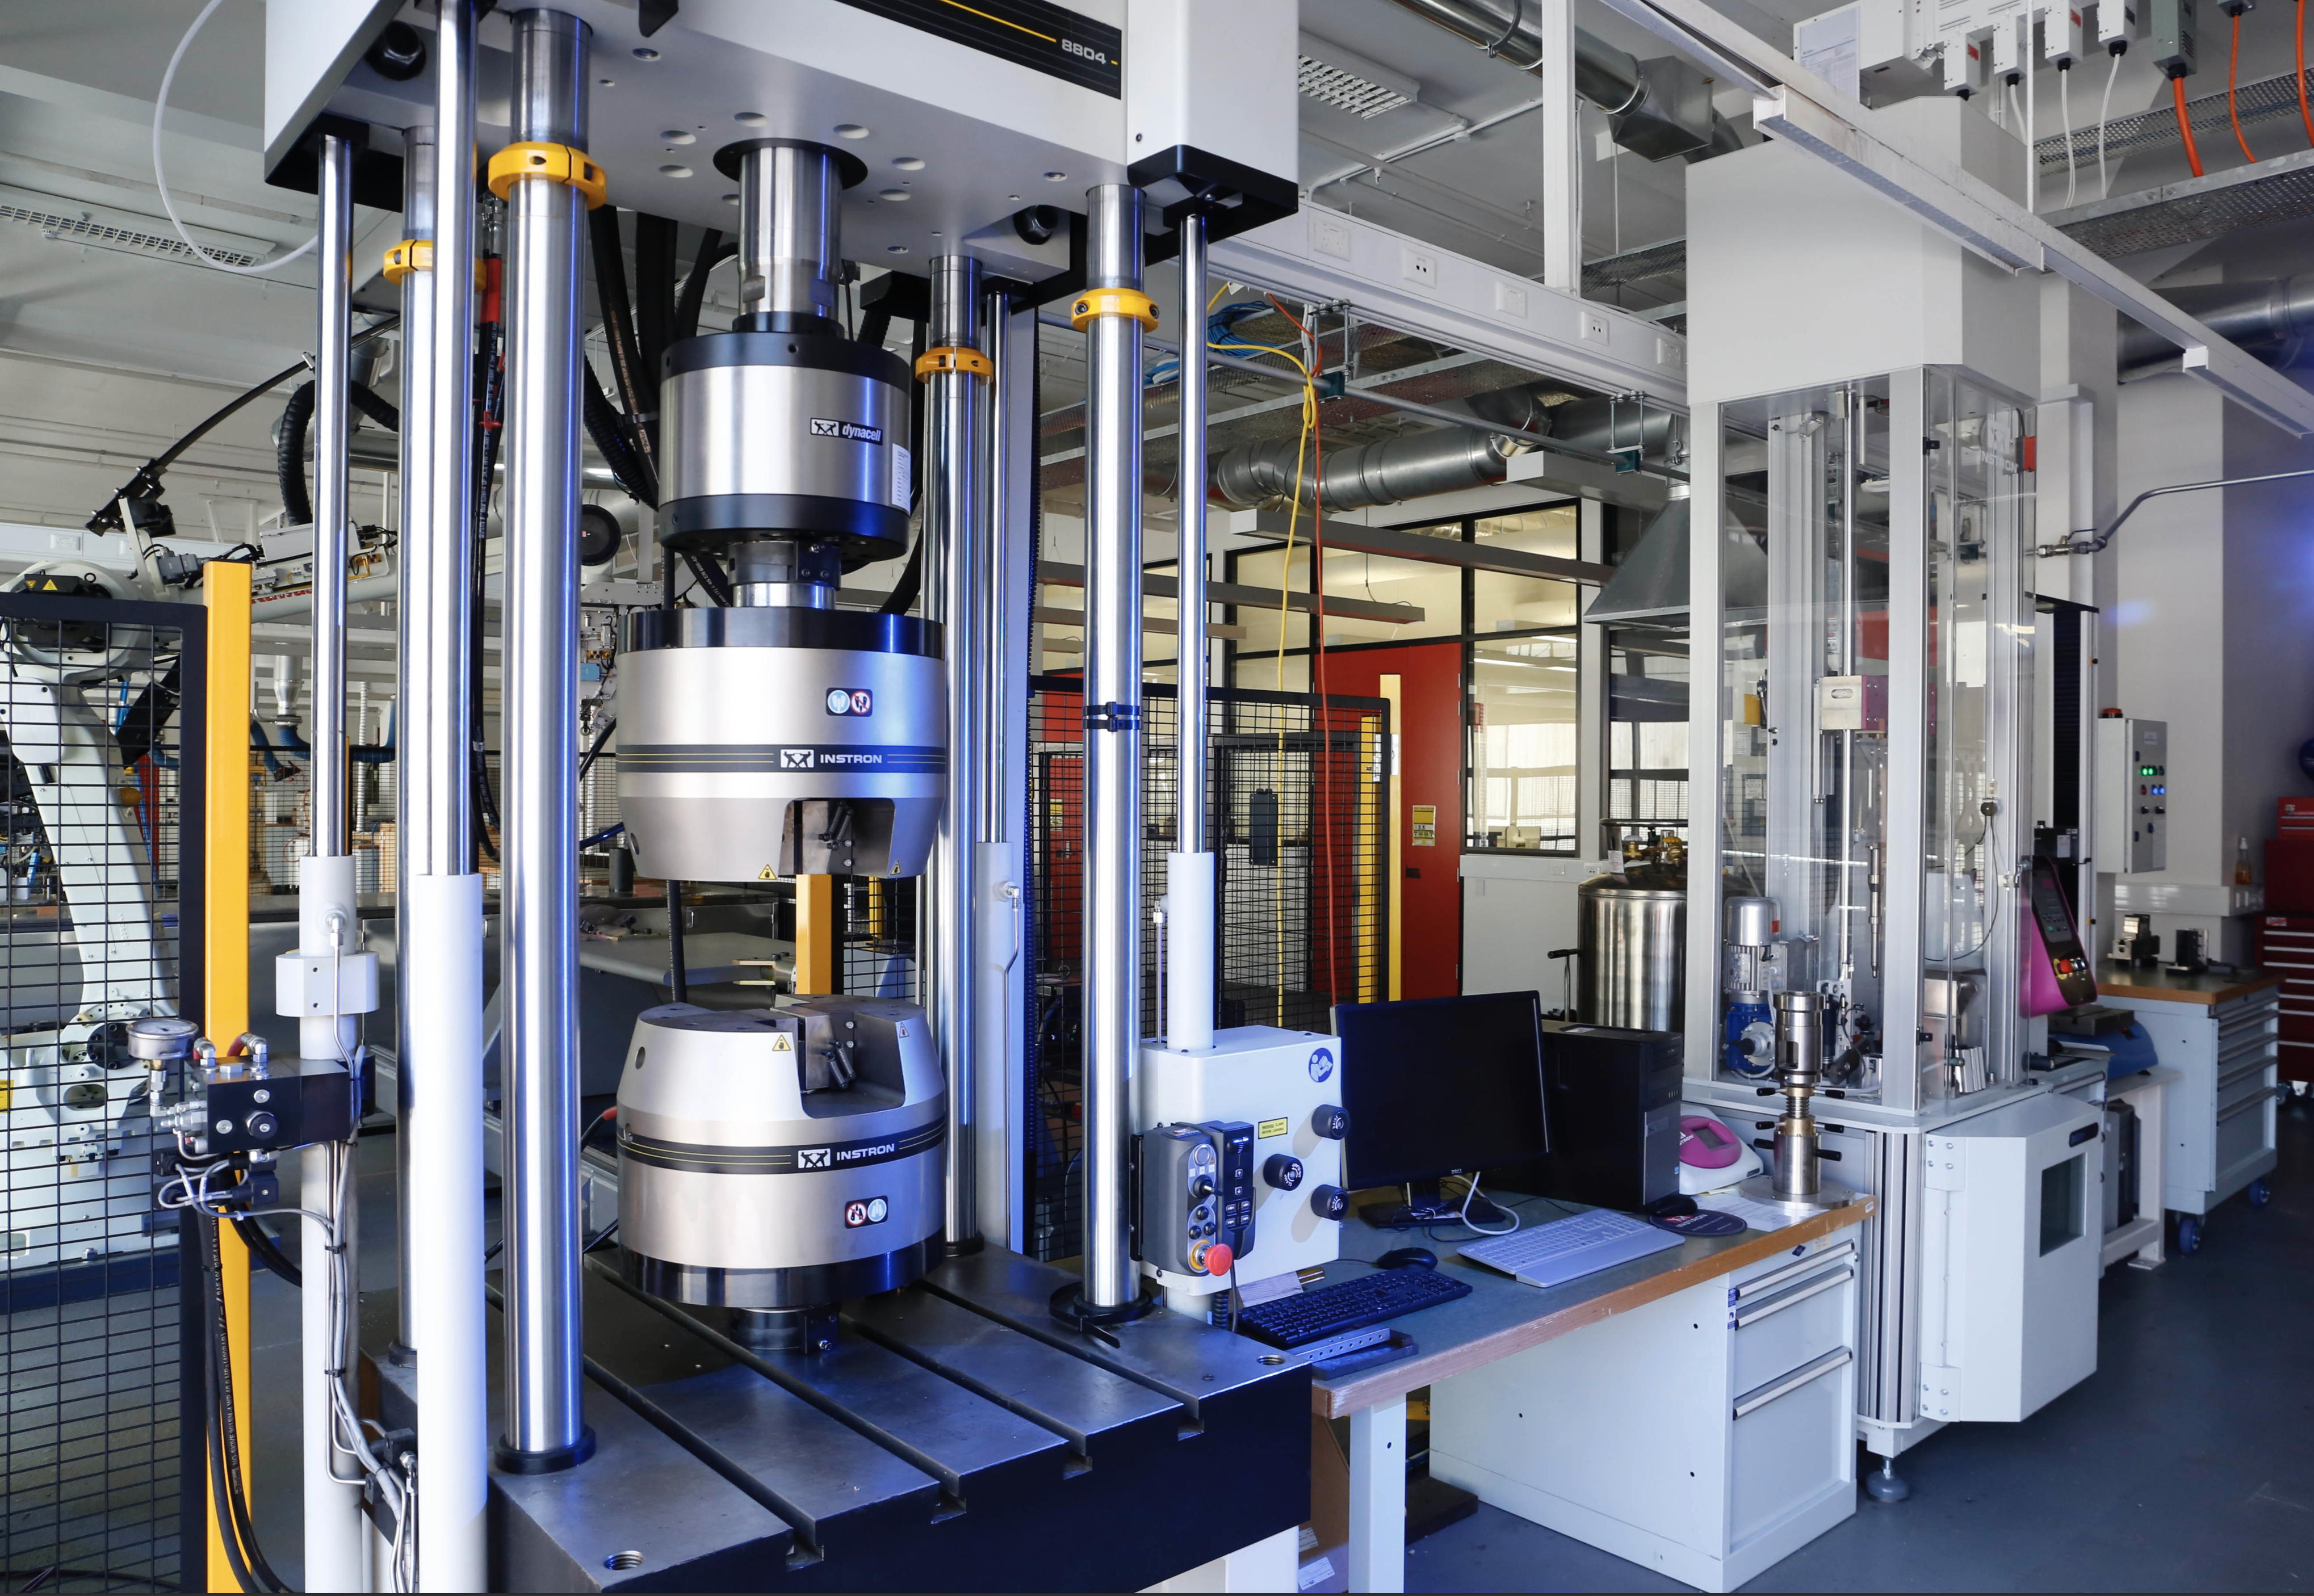 The UNSW node of AMAC has all of the facilities required for fabricating and testing of composite materials and structures.